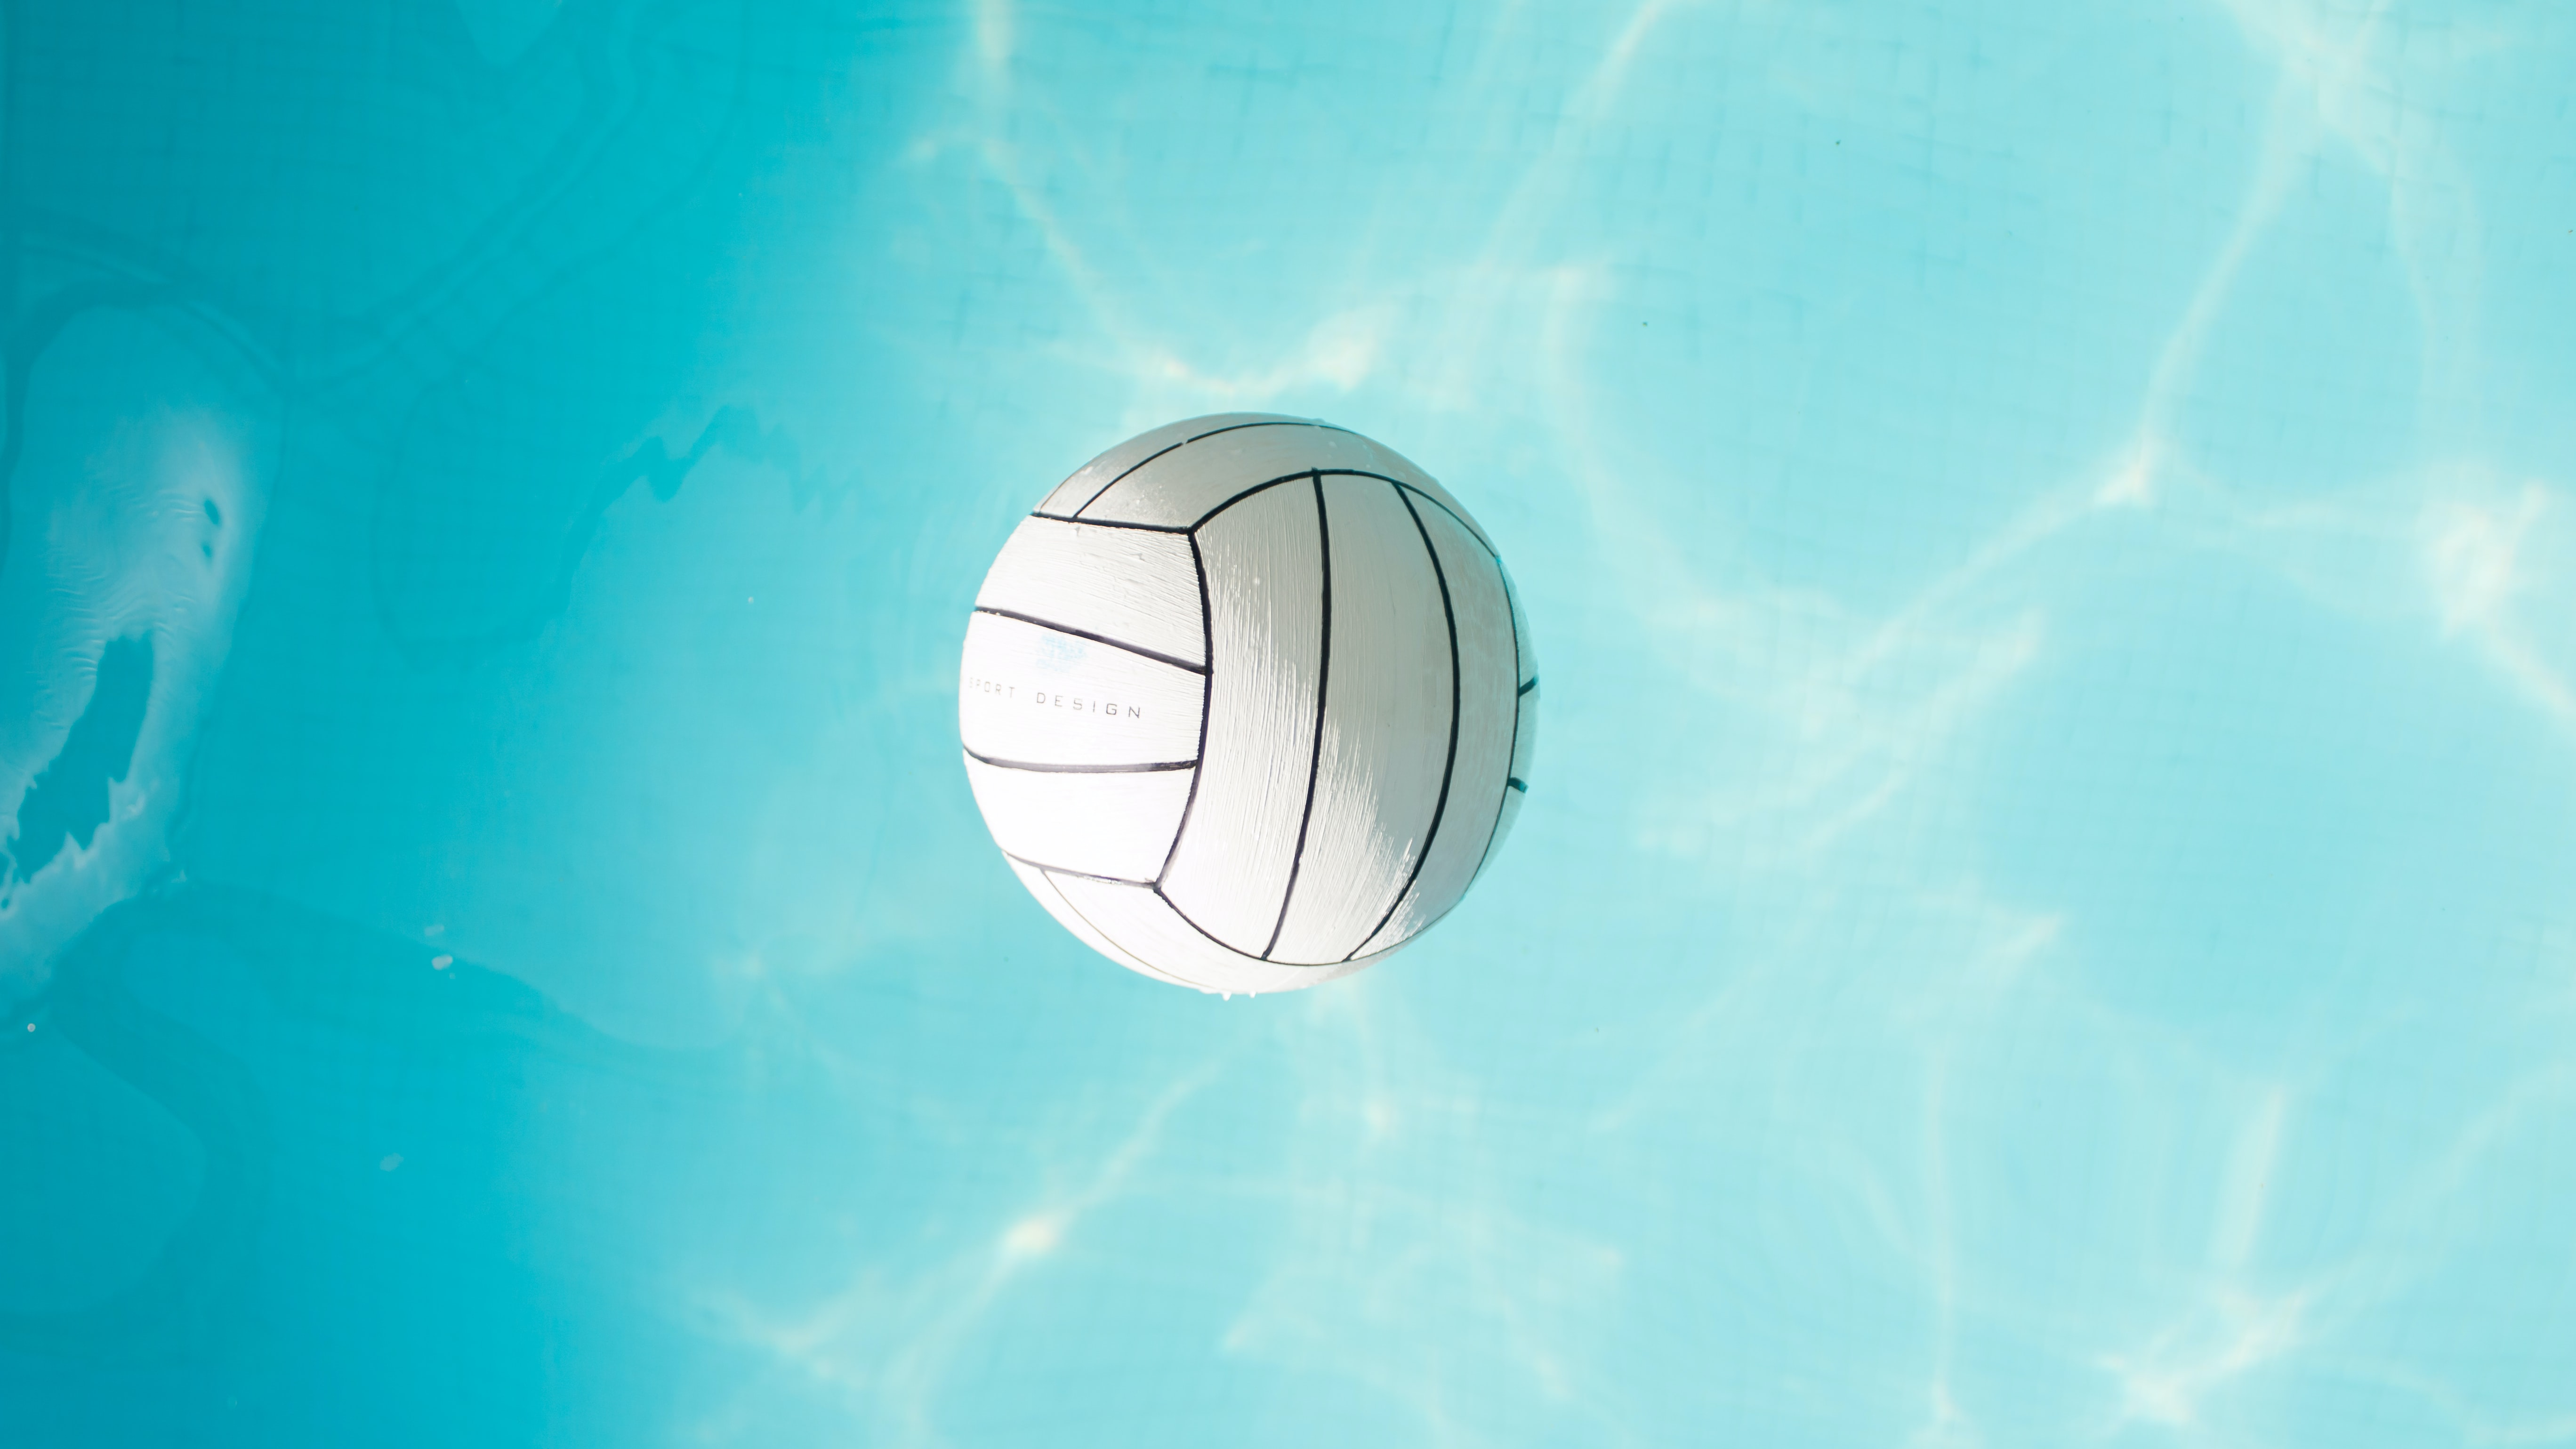 A white water polo ball floating in a swimming pool in Sopron